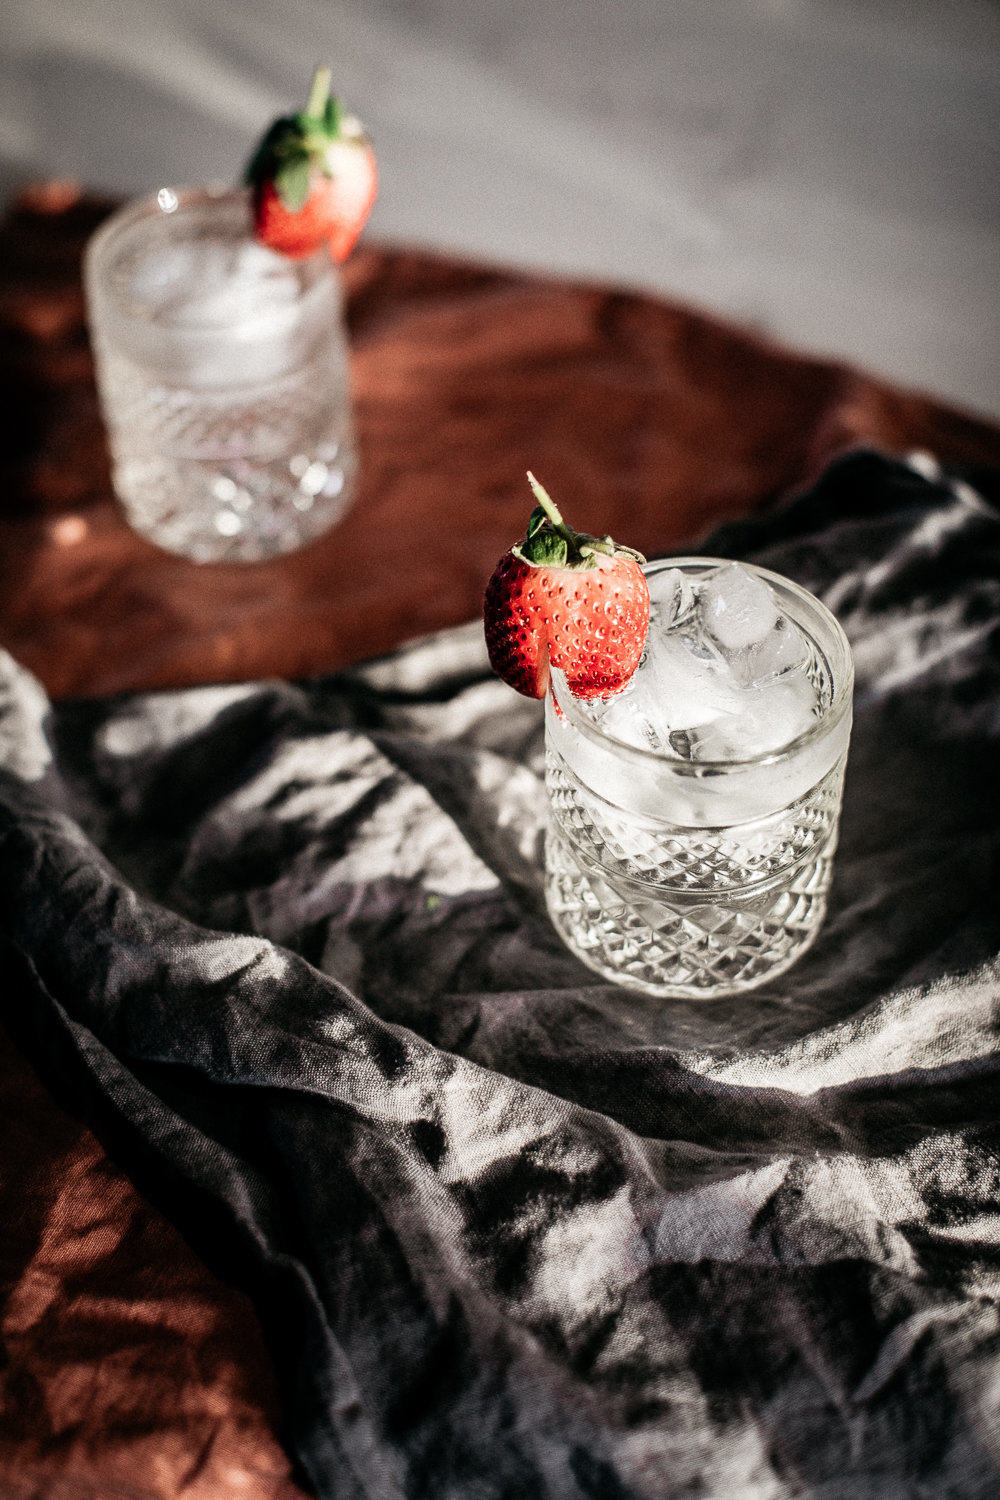 I Love Linen - Strawberry Water - Anisa Sabet - The Macadames - Food Travel Lifestyle Photographer-63